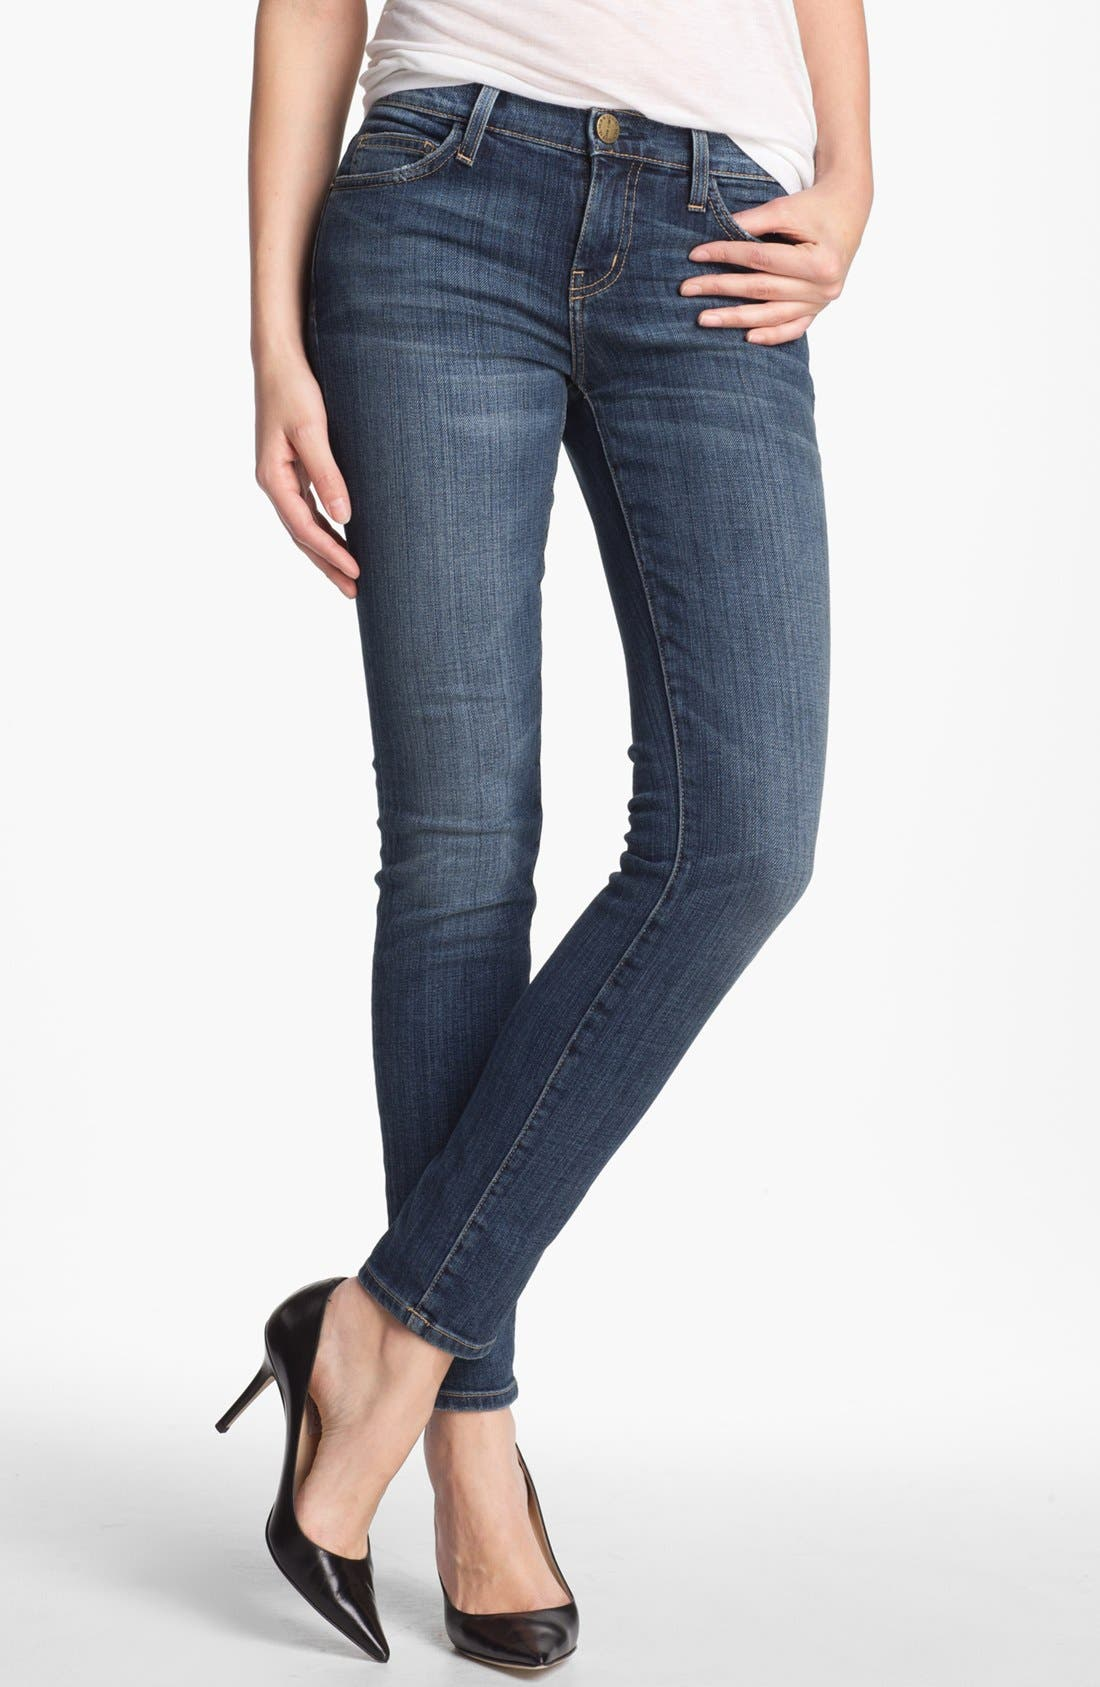 Main Image - Current/Elliott 'The Ankle' Skinny Jeans (Loved)